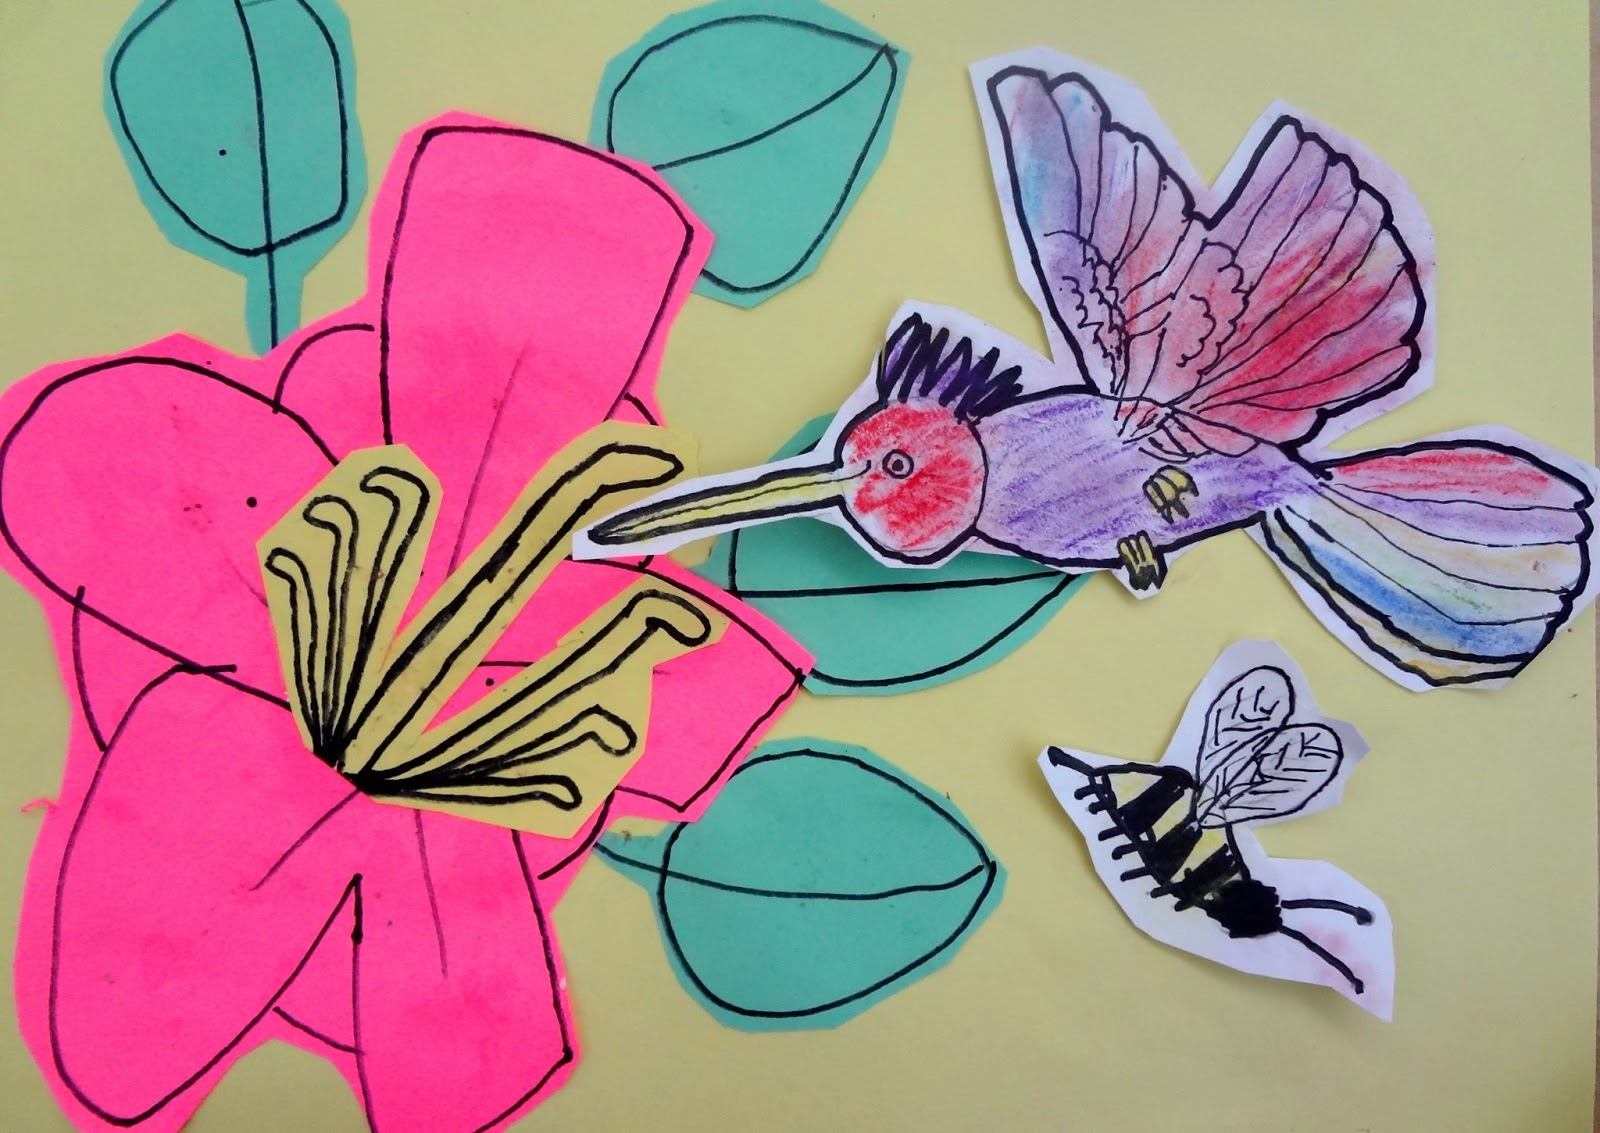 The Talking Walls Art Science Integrated Pollination and Parts of a Flower